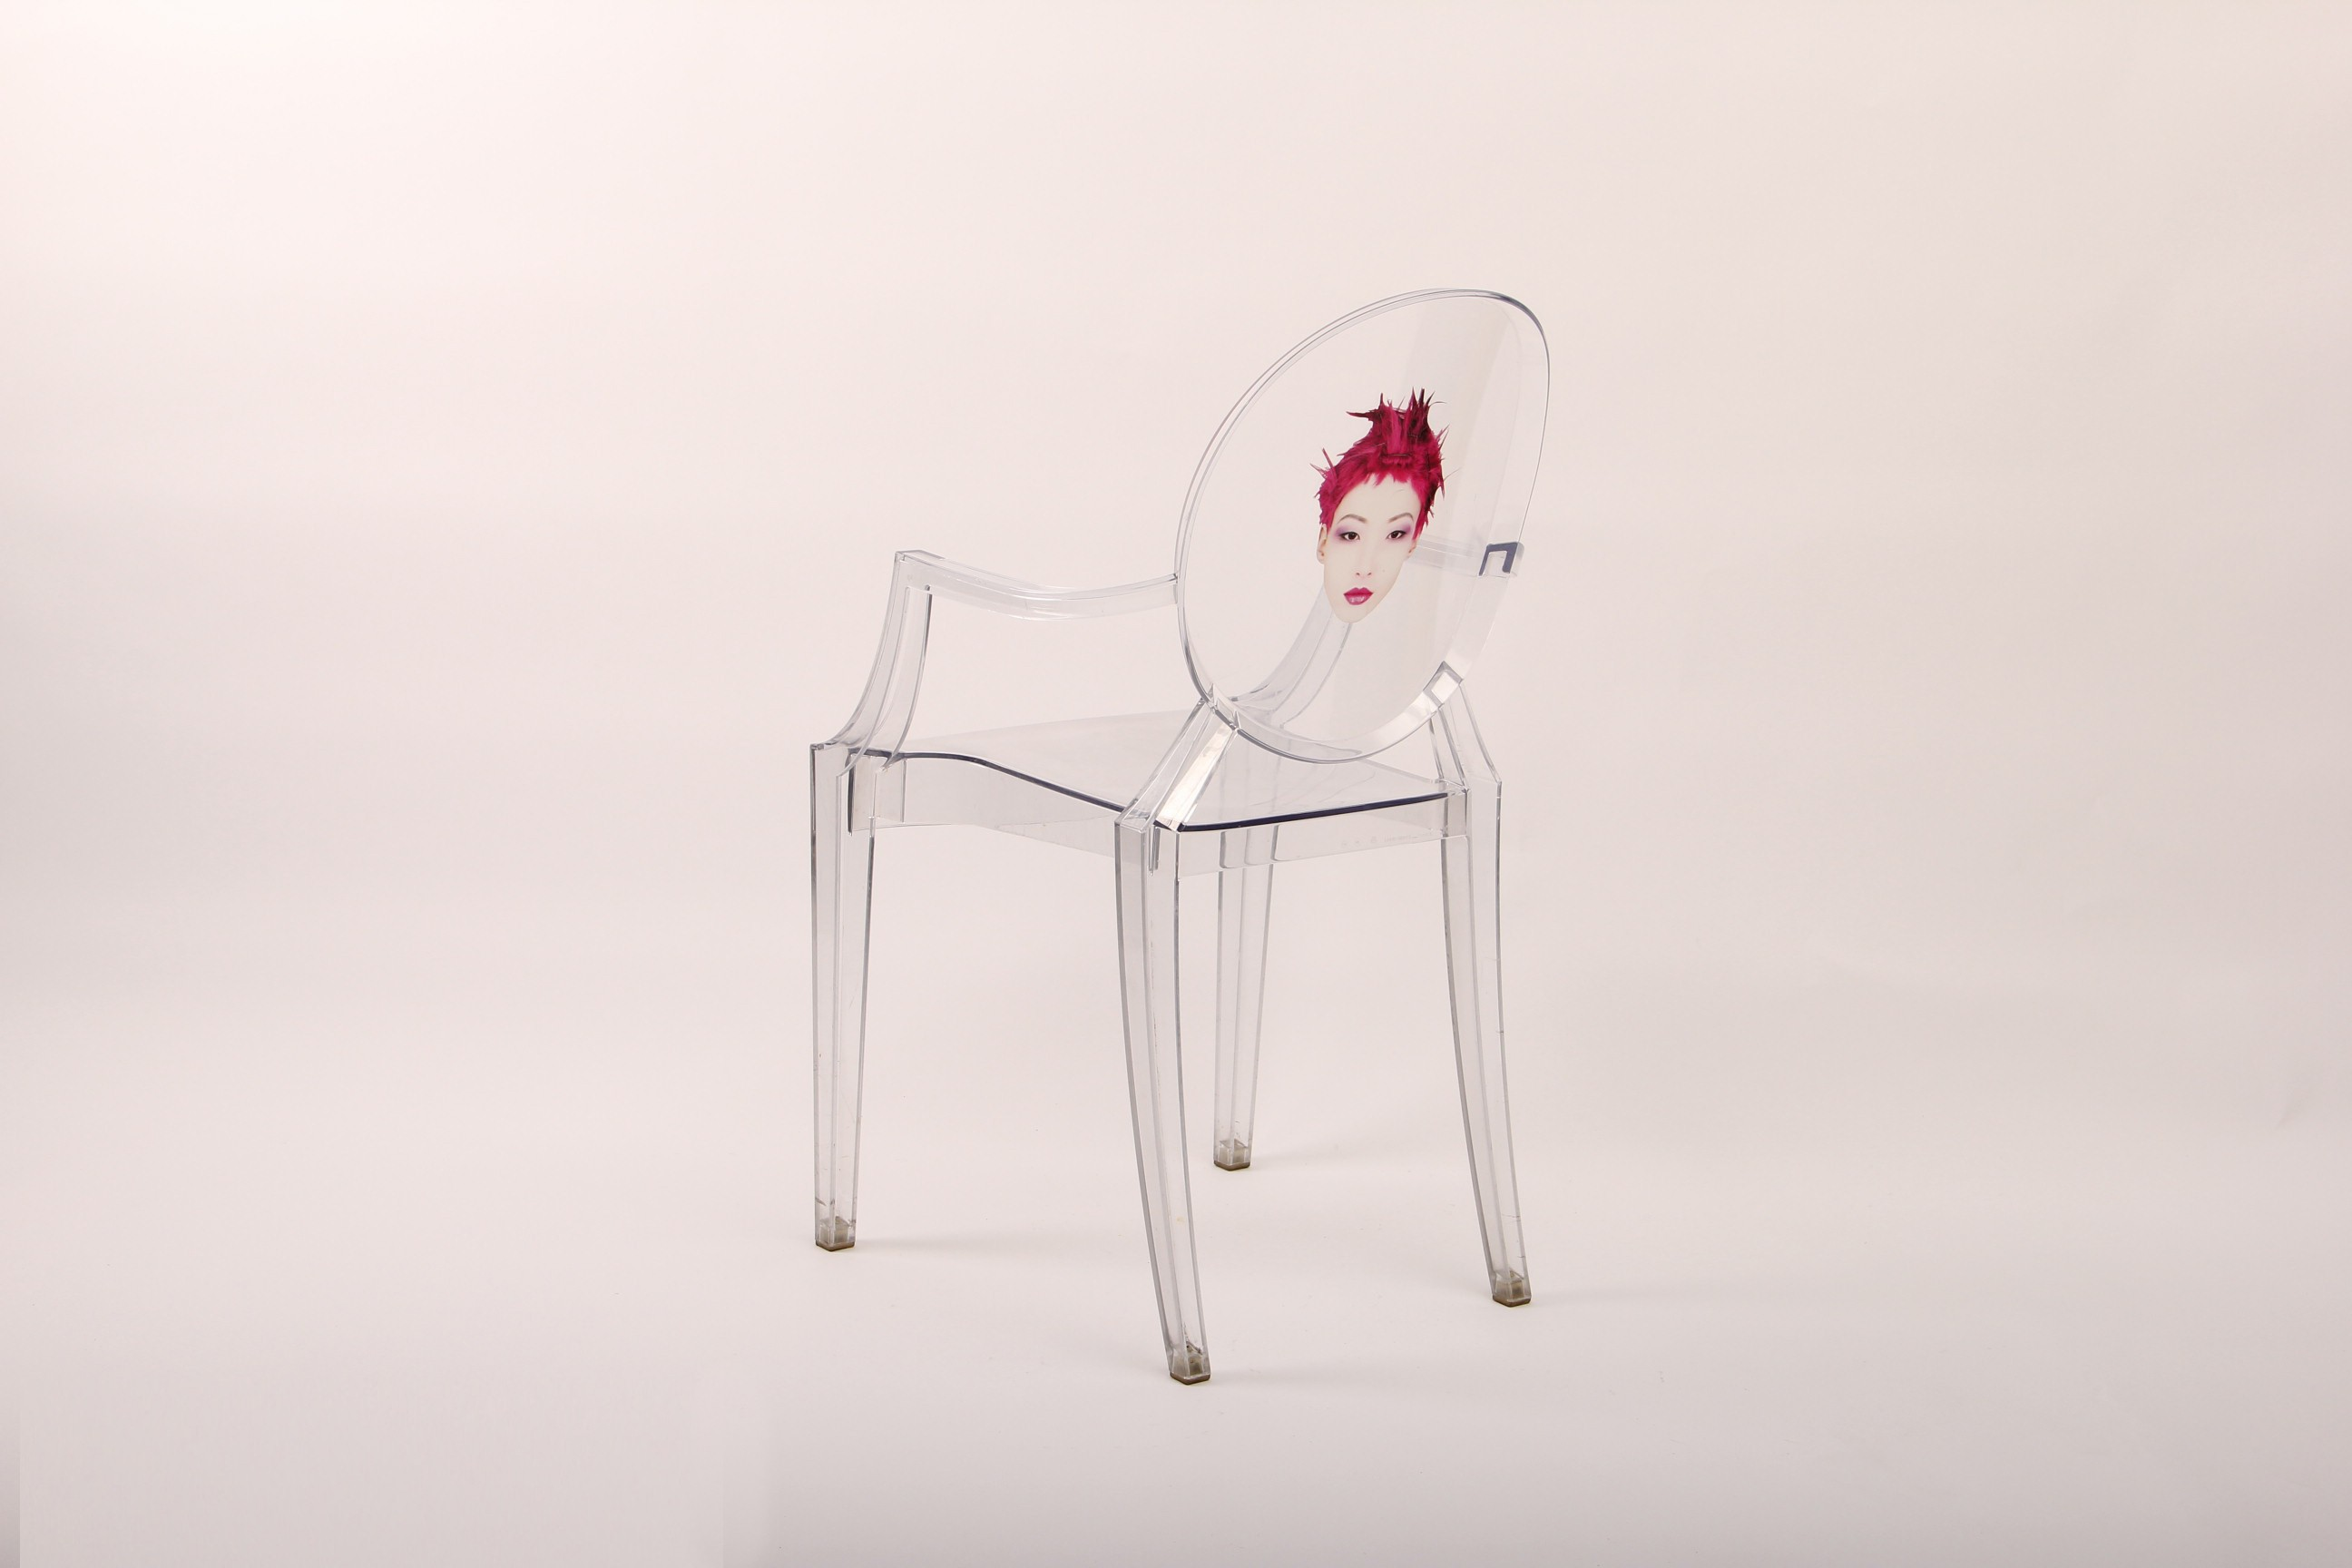 Chairs Louis Ghost Philippe Starck 2000s Design Market